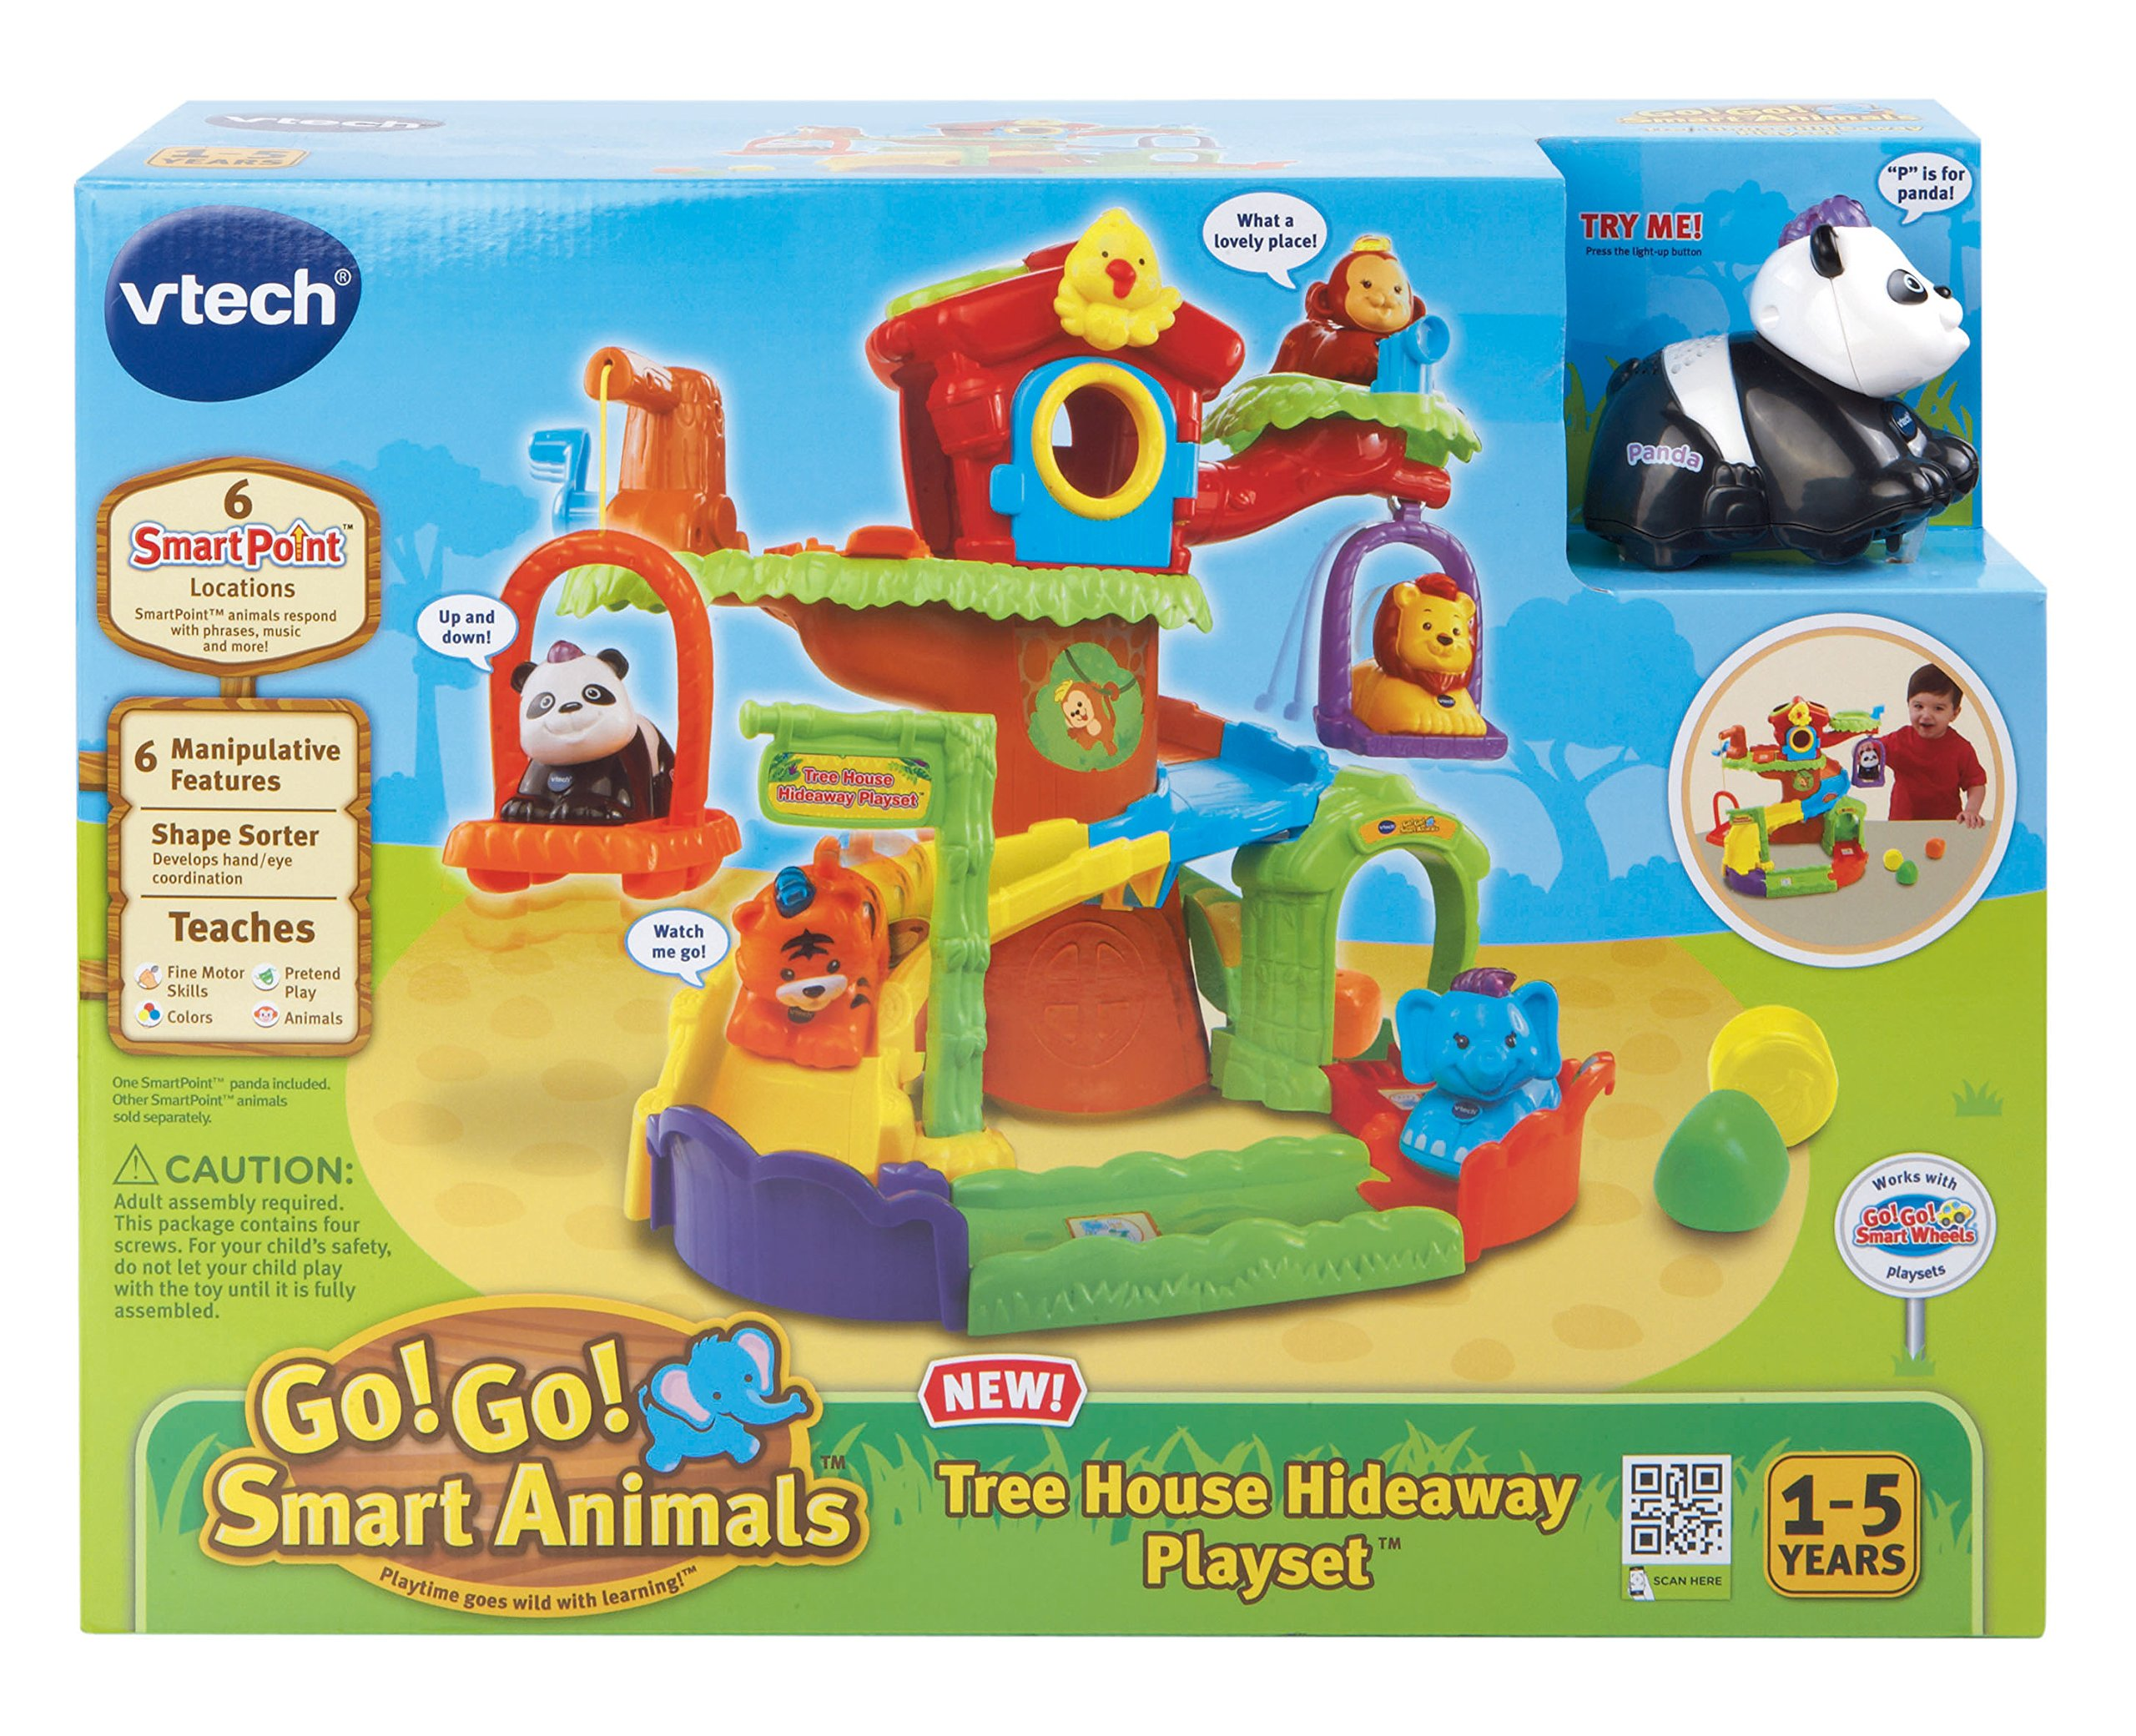 VTech Go! Go! Smart Animals Tree House Hideaway Playset by VTech Go! Go! Smart Animals (Image #4)